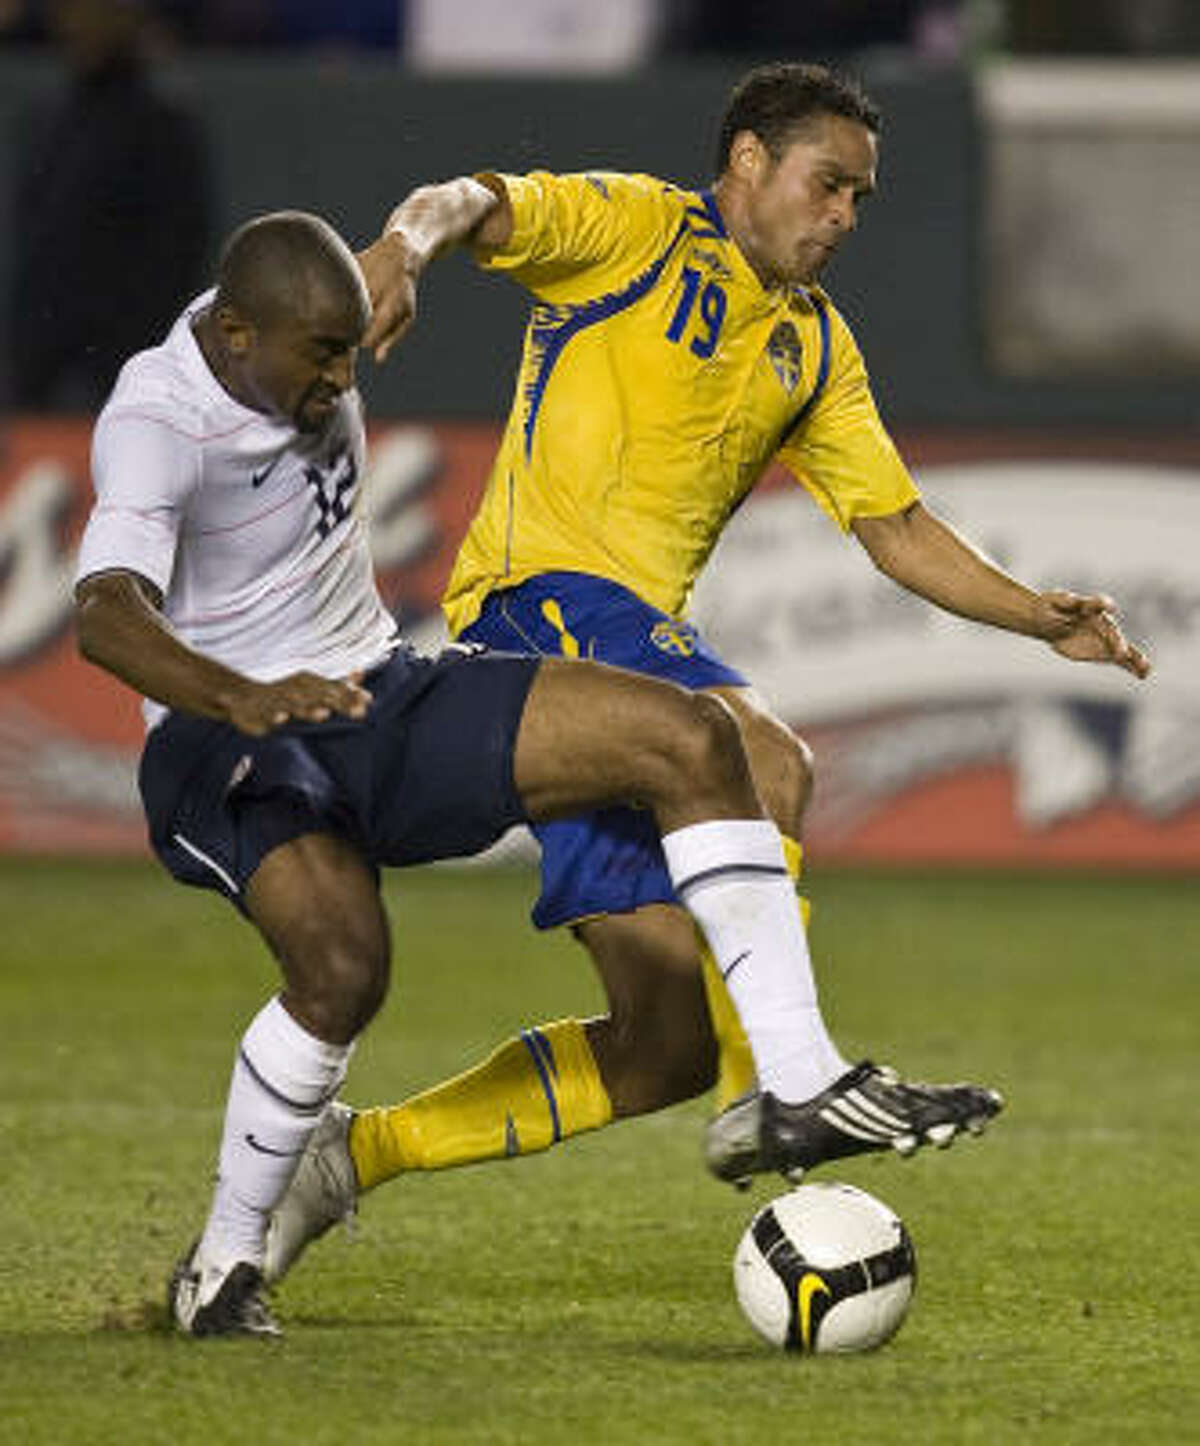 Sweden forward Daniel Nannskog and United States defender Marvell Wynne battle for the ball.